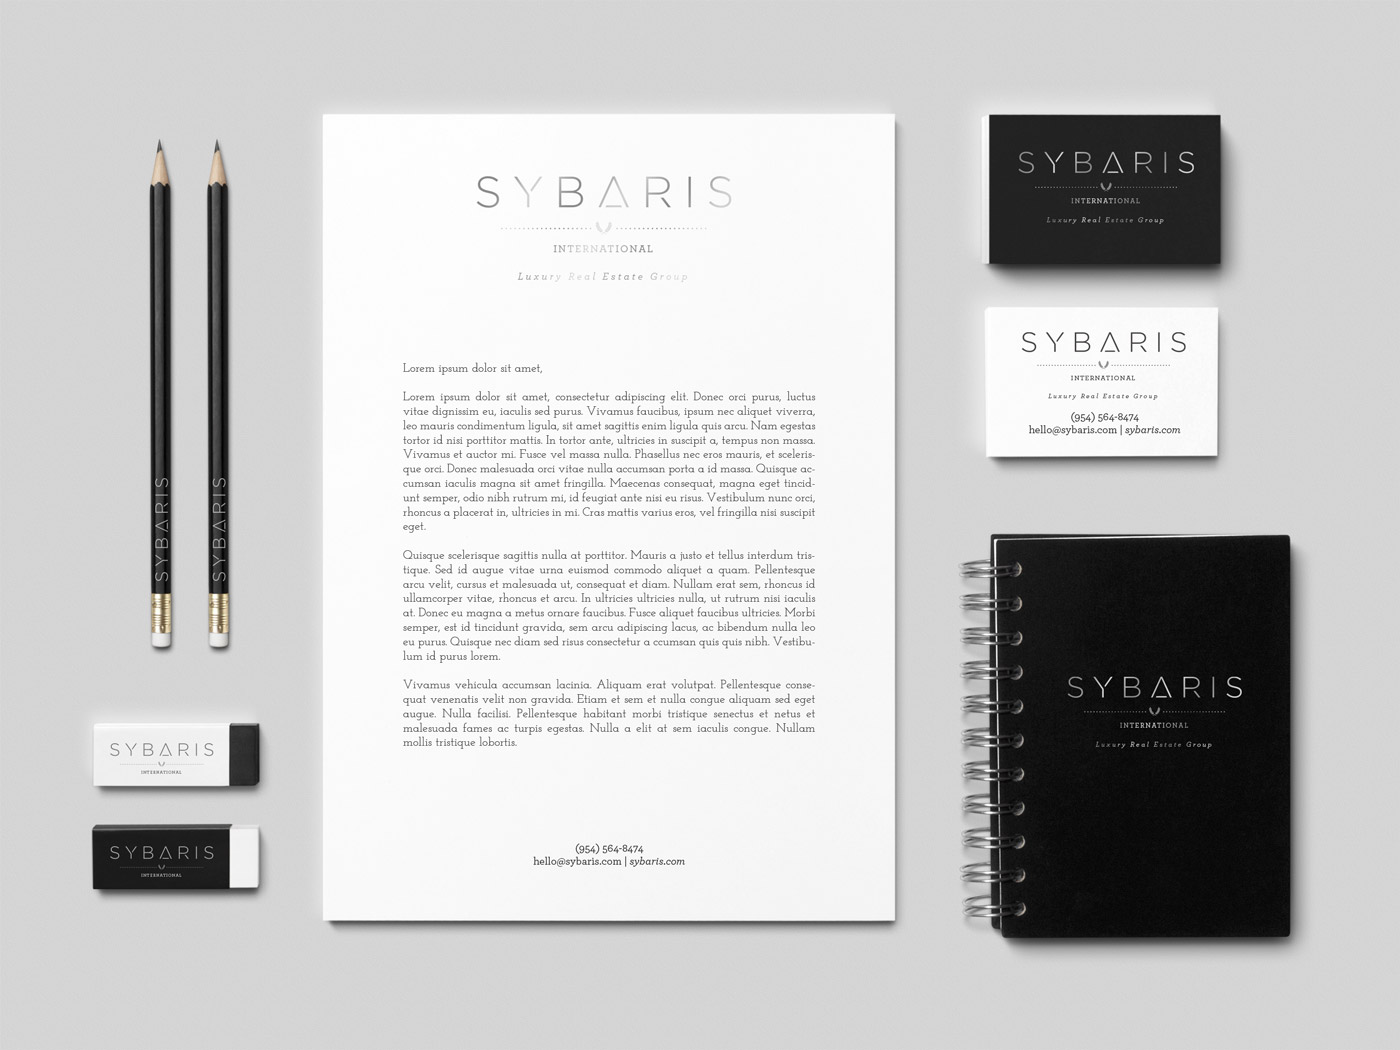 Sybaris_Black-&-White-Branding-Mock-Up